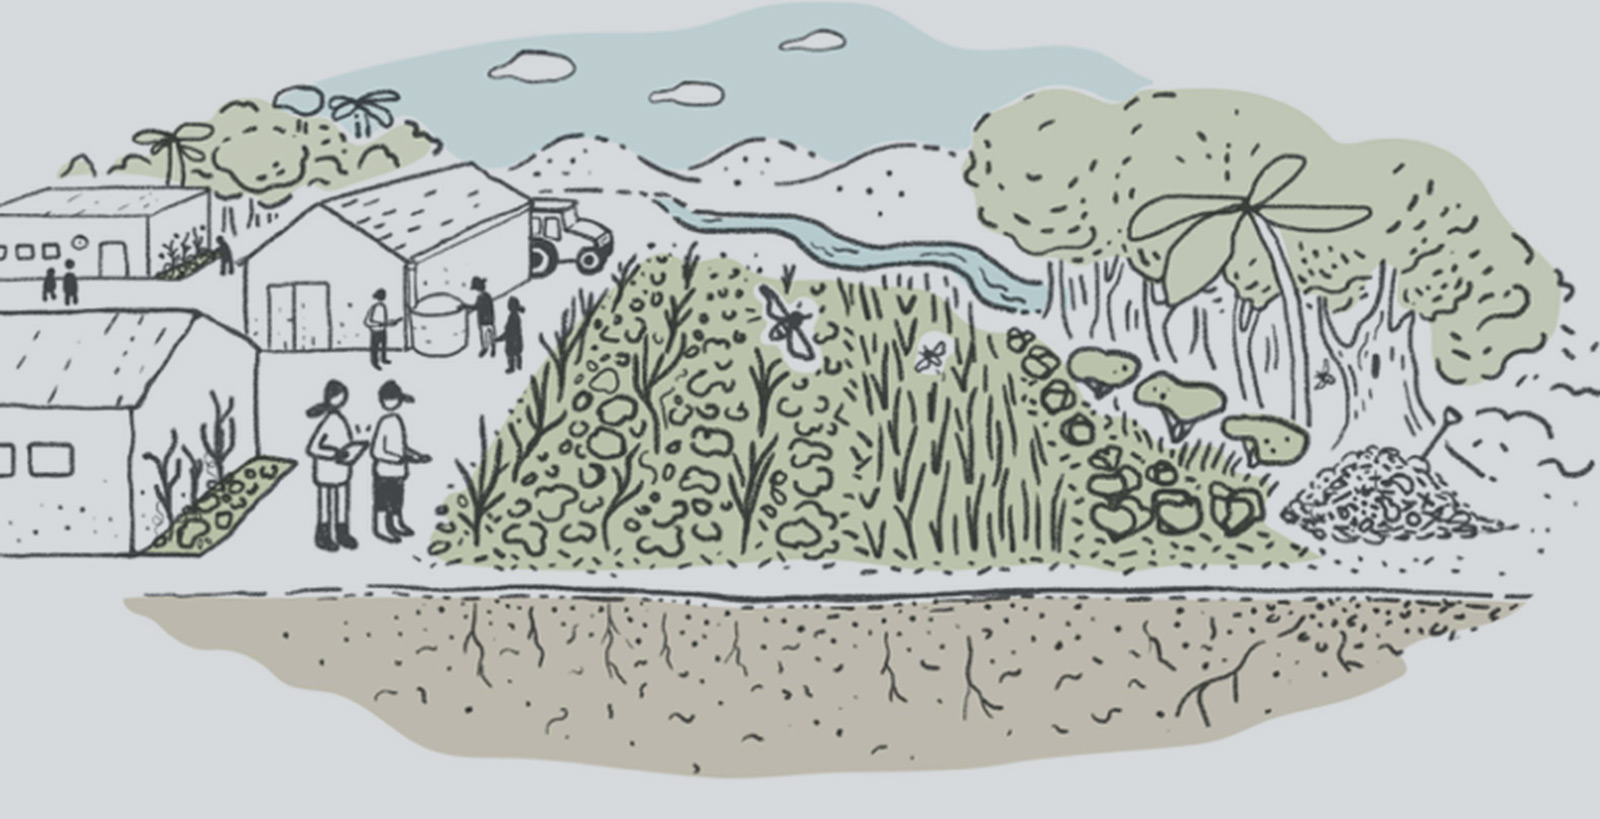 How are Agroecological Farmers Challenging the Industrial Way of Farming?